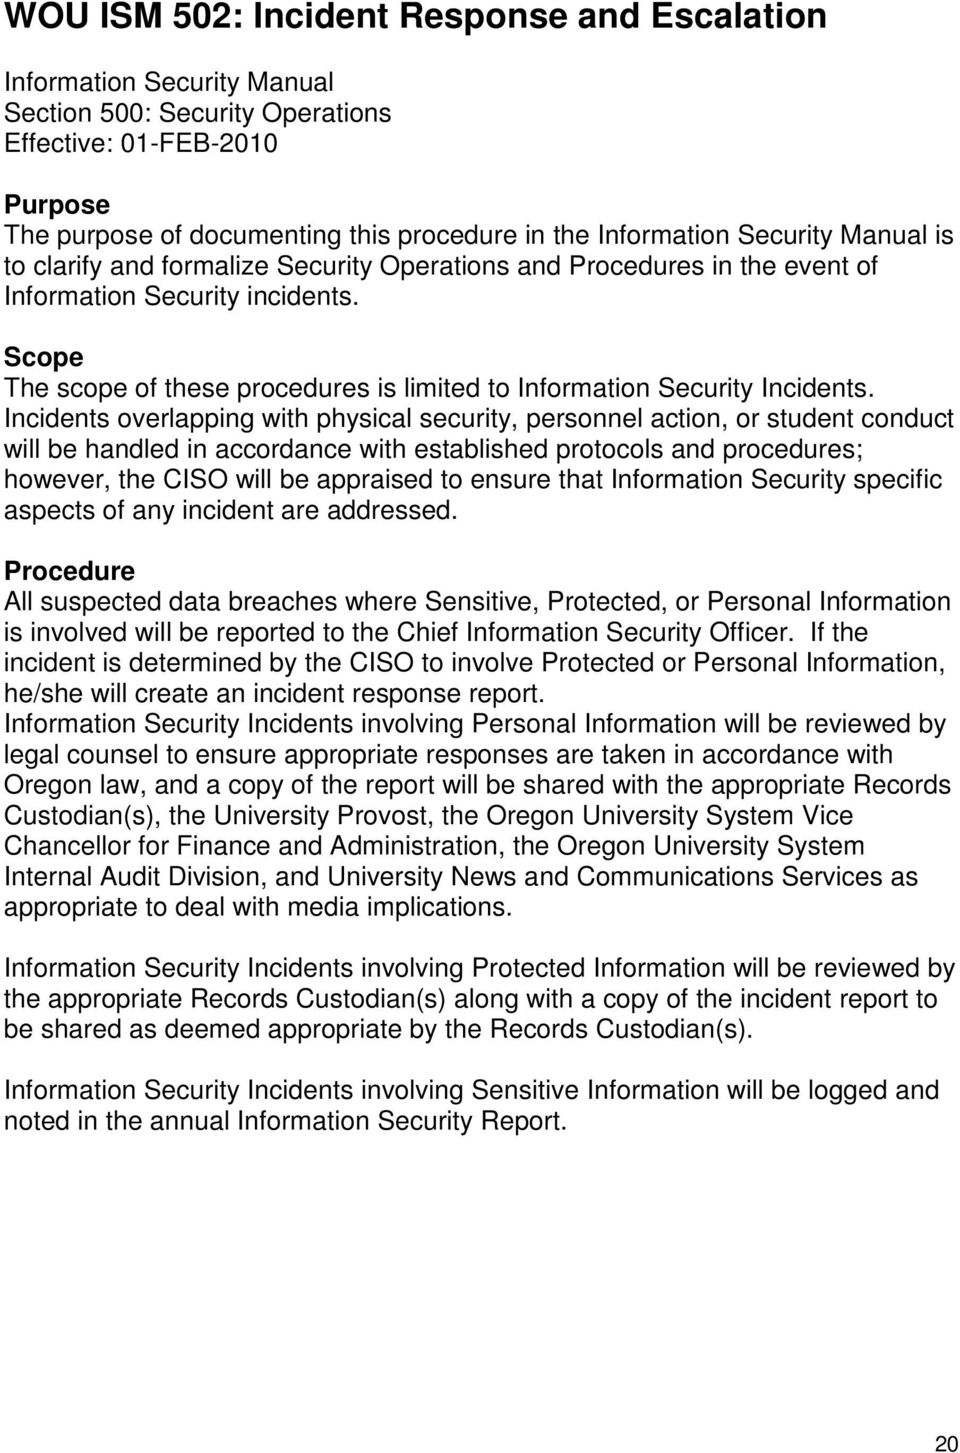 Incidents overlapping with physical security, personnel action, or student conduct will be handled in accordance with established protocols and procedures; however, the CISO will be appraised to